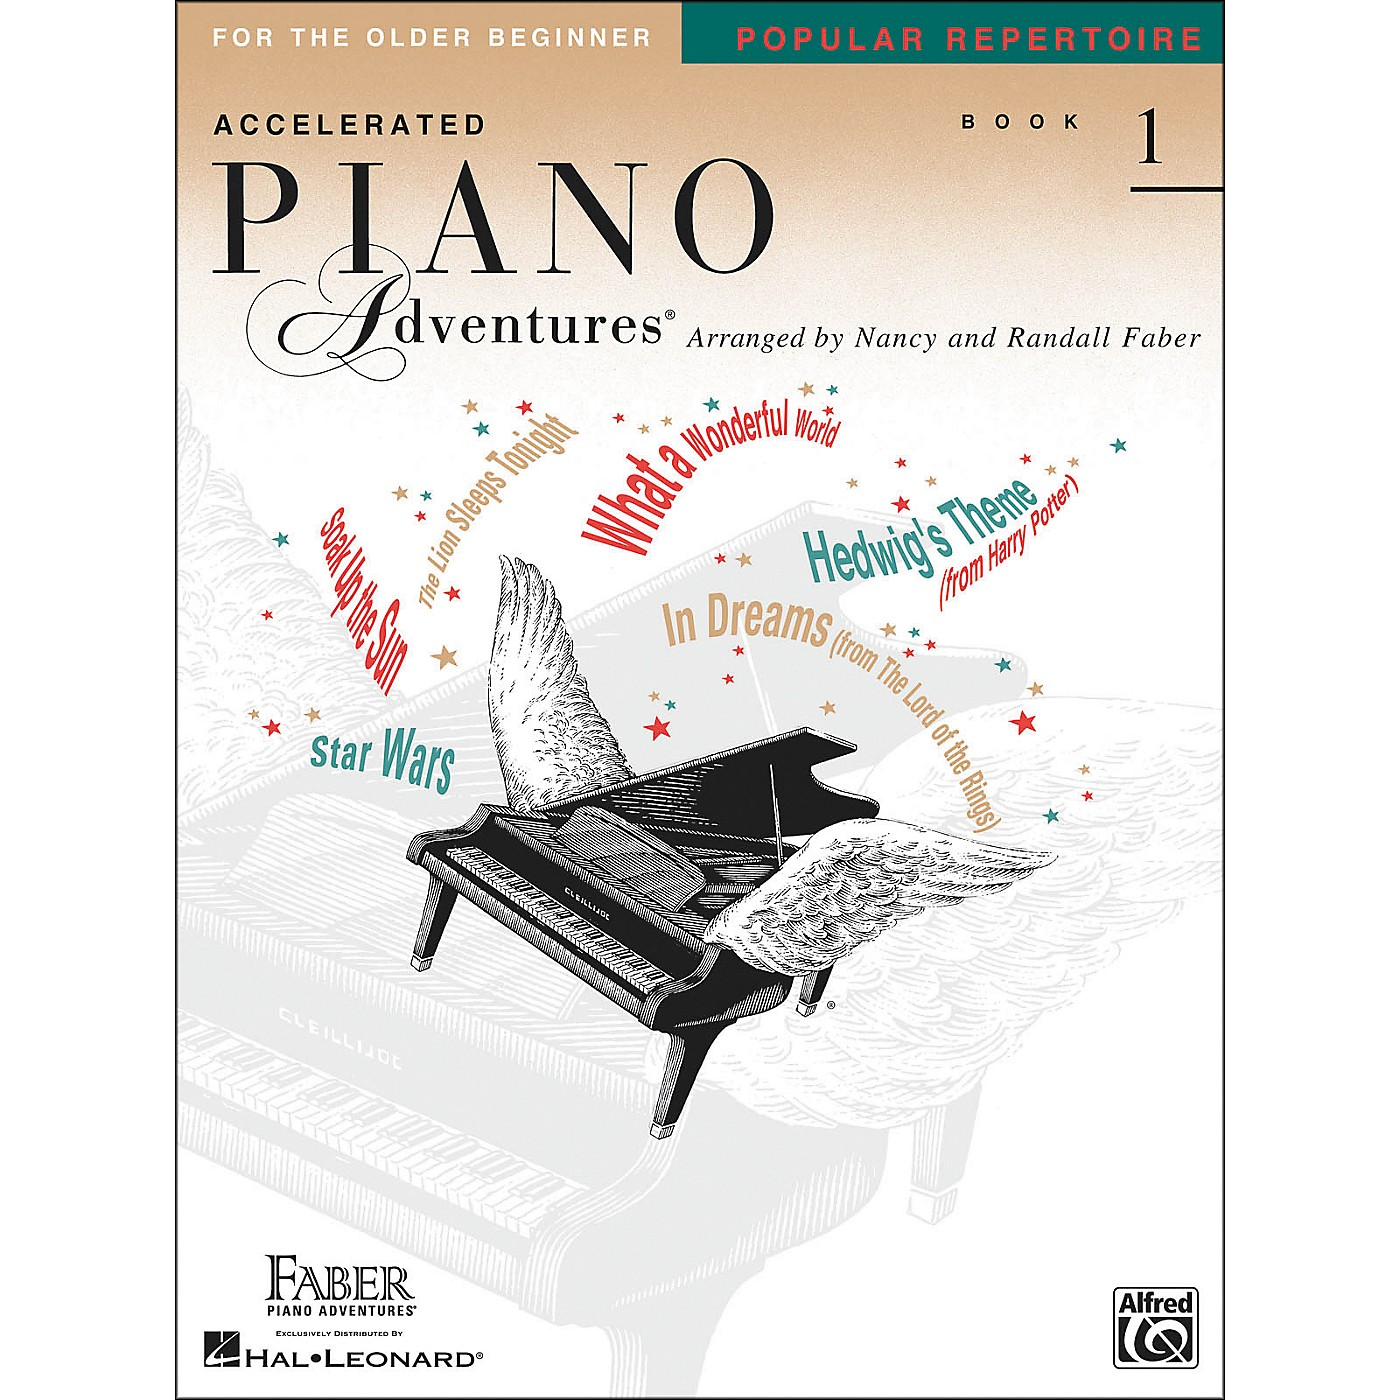 Faber Piano Adventures Accelerated Piano Adventures Pop Repertoire Book1 - Faber Piano thumbnail